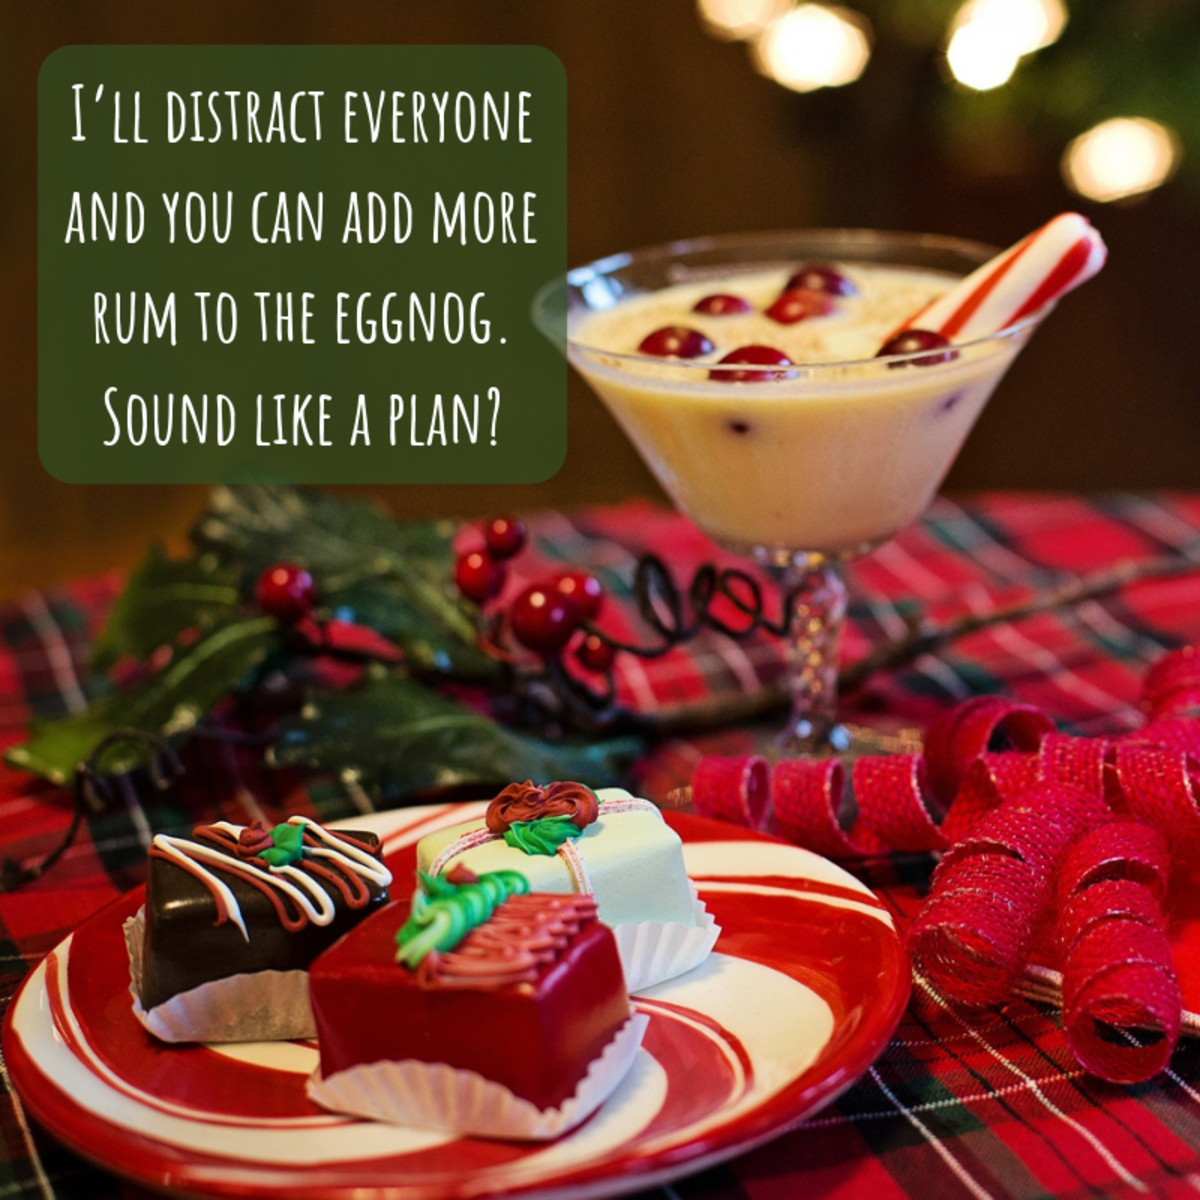 Traditional Christmas messages can be a little drab—spice yours up with some silliness.